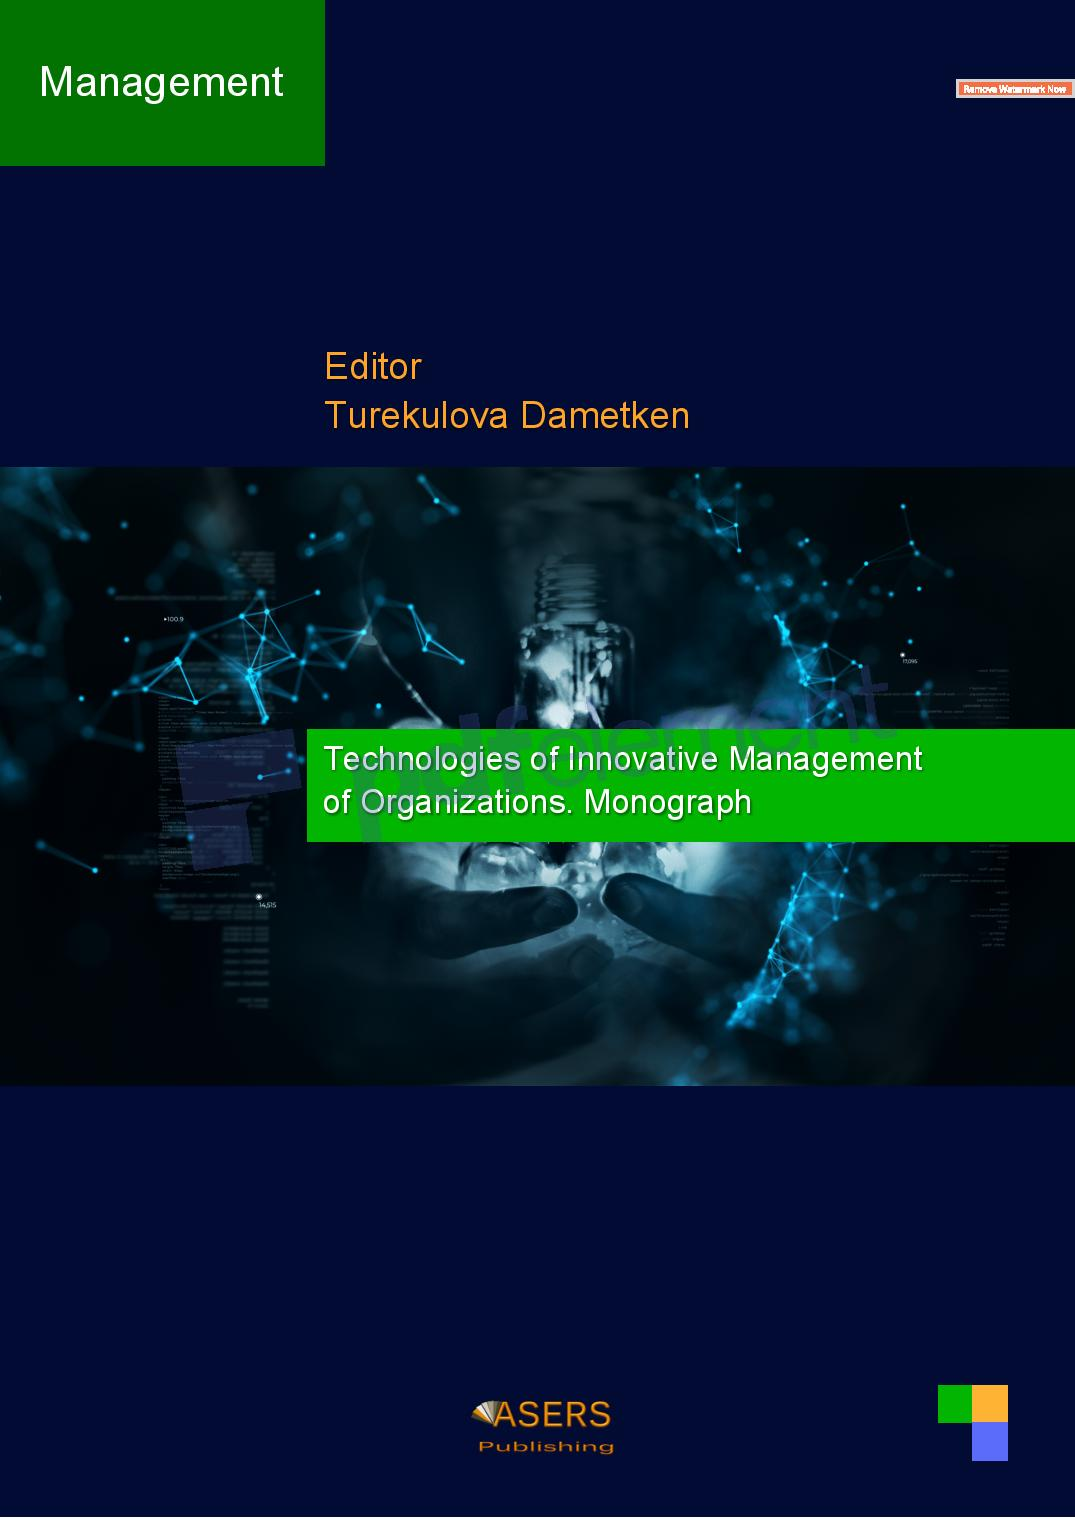 Technologies of Innovative Management of Organizations. Monograph